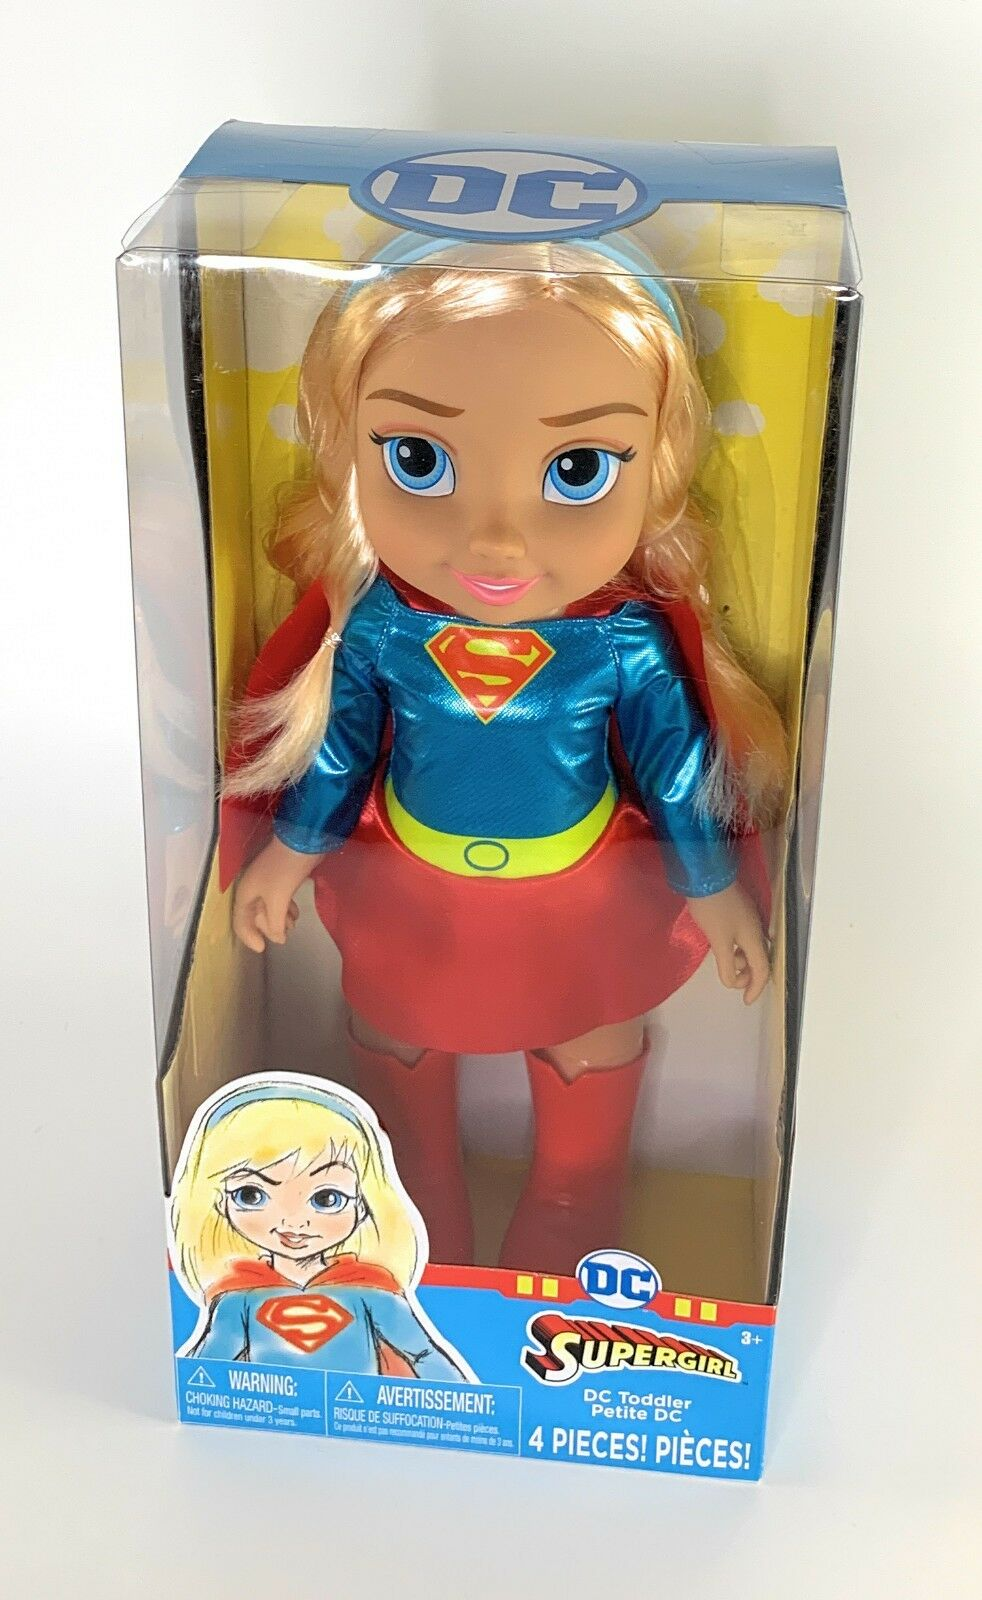 Supergirl Toddler Petite Doll Dc Super Hero Justice League Unlimited 15'' Sealed